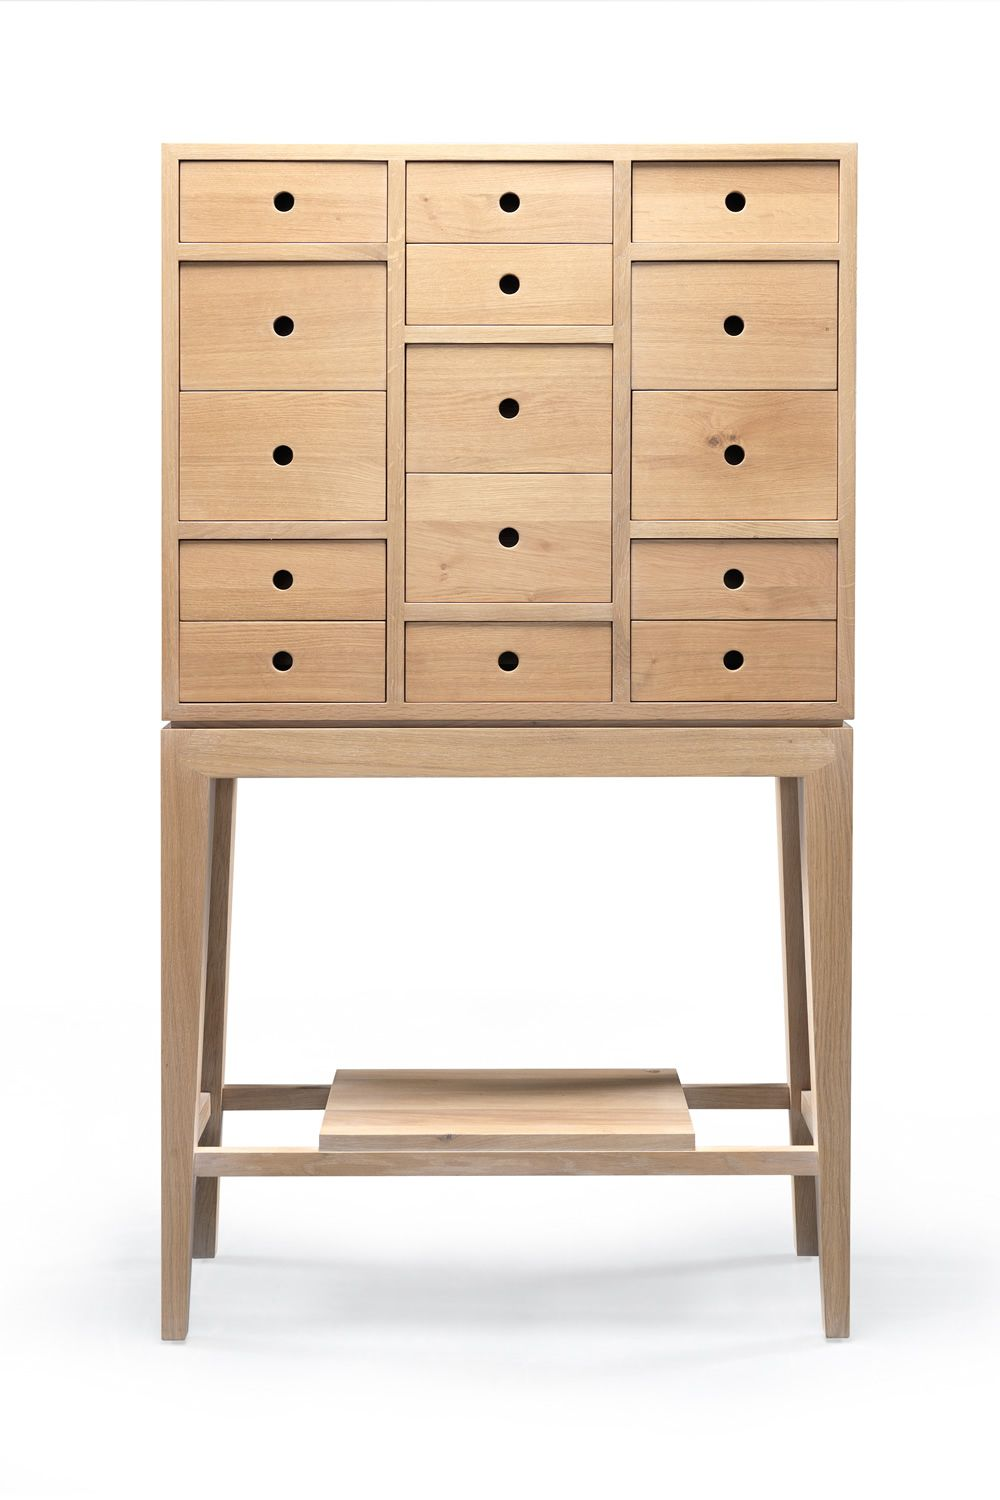 contador commode avec tiroirs en bois massif disponible en ch ne ou en noyer hauteur 146 cm. Black Bedroom Furniture Sets. Home Design Ideas